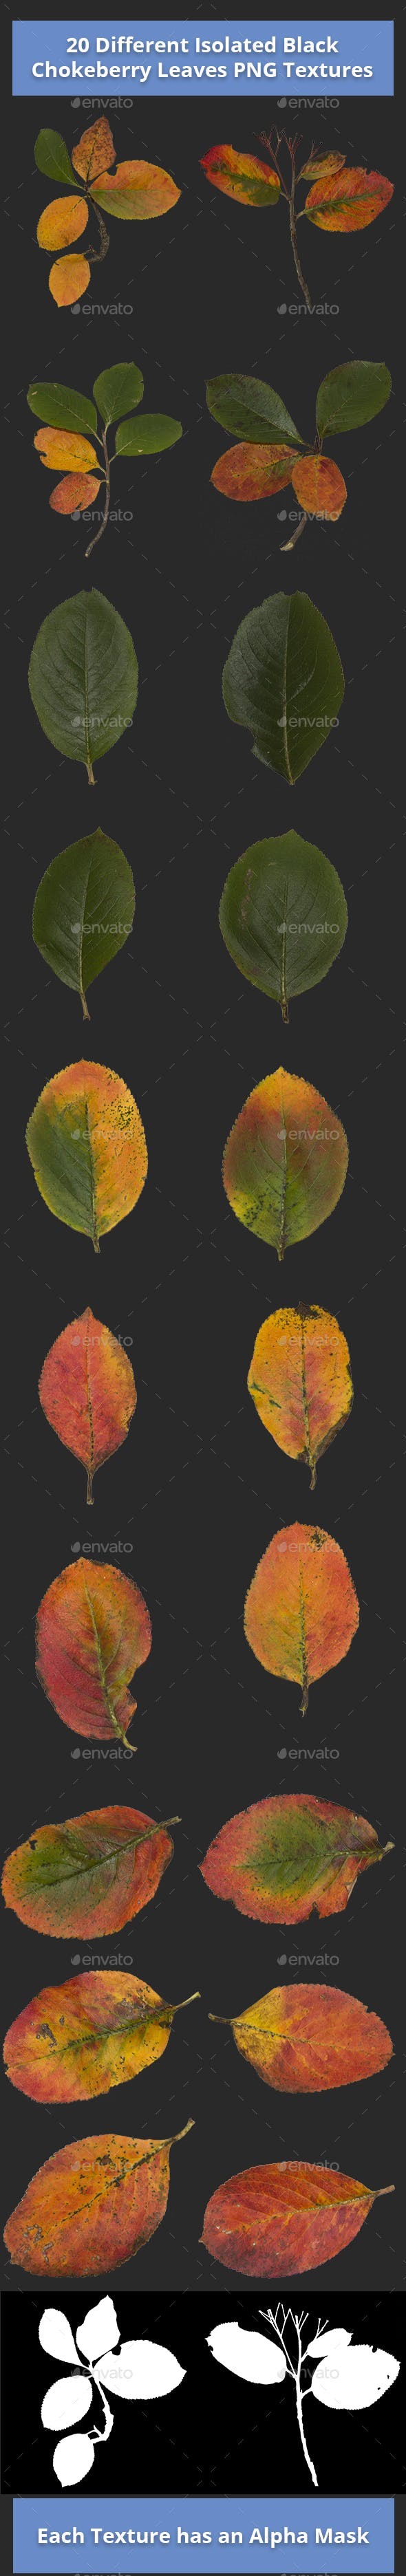 Pack of 20 Isolated Black Chokeberry Leaves Textures - 3DOcean Item for Sale